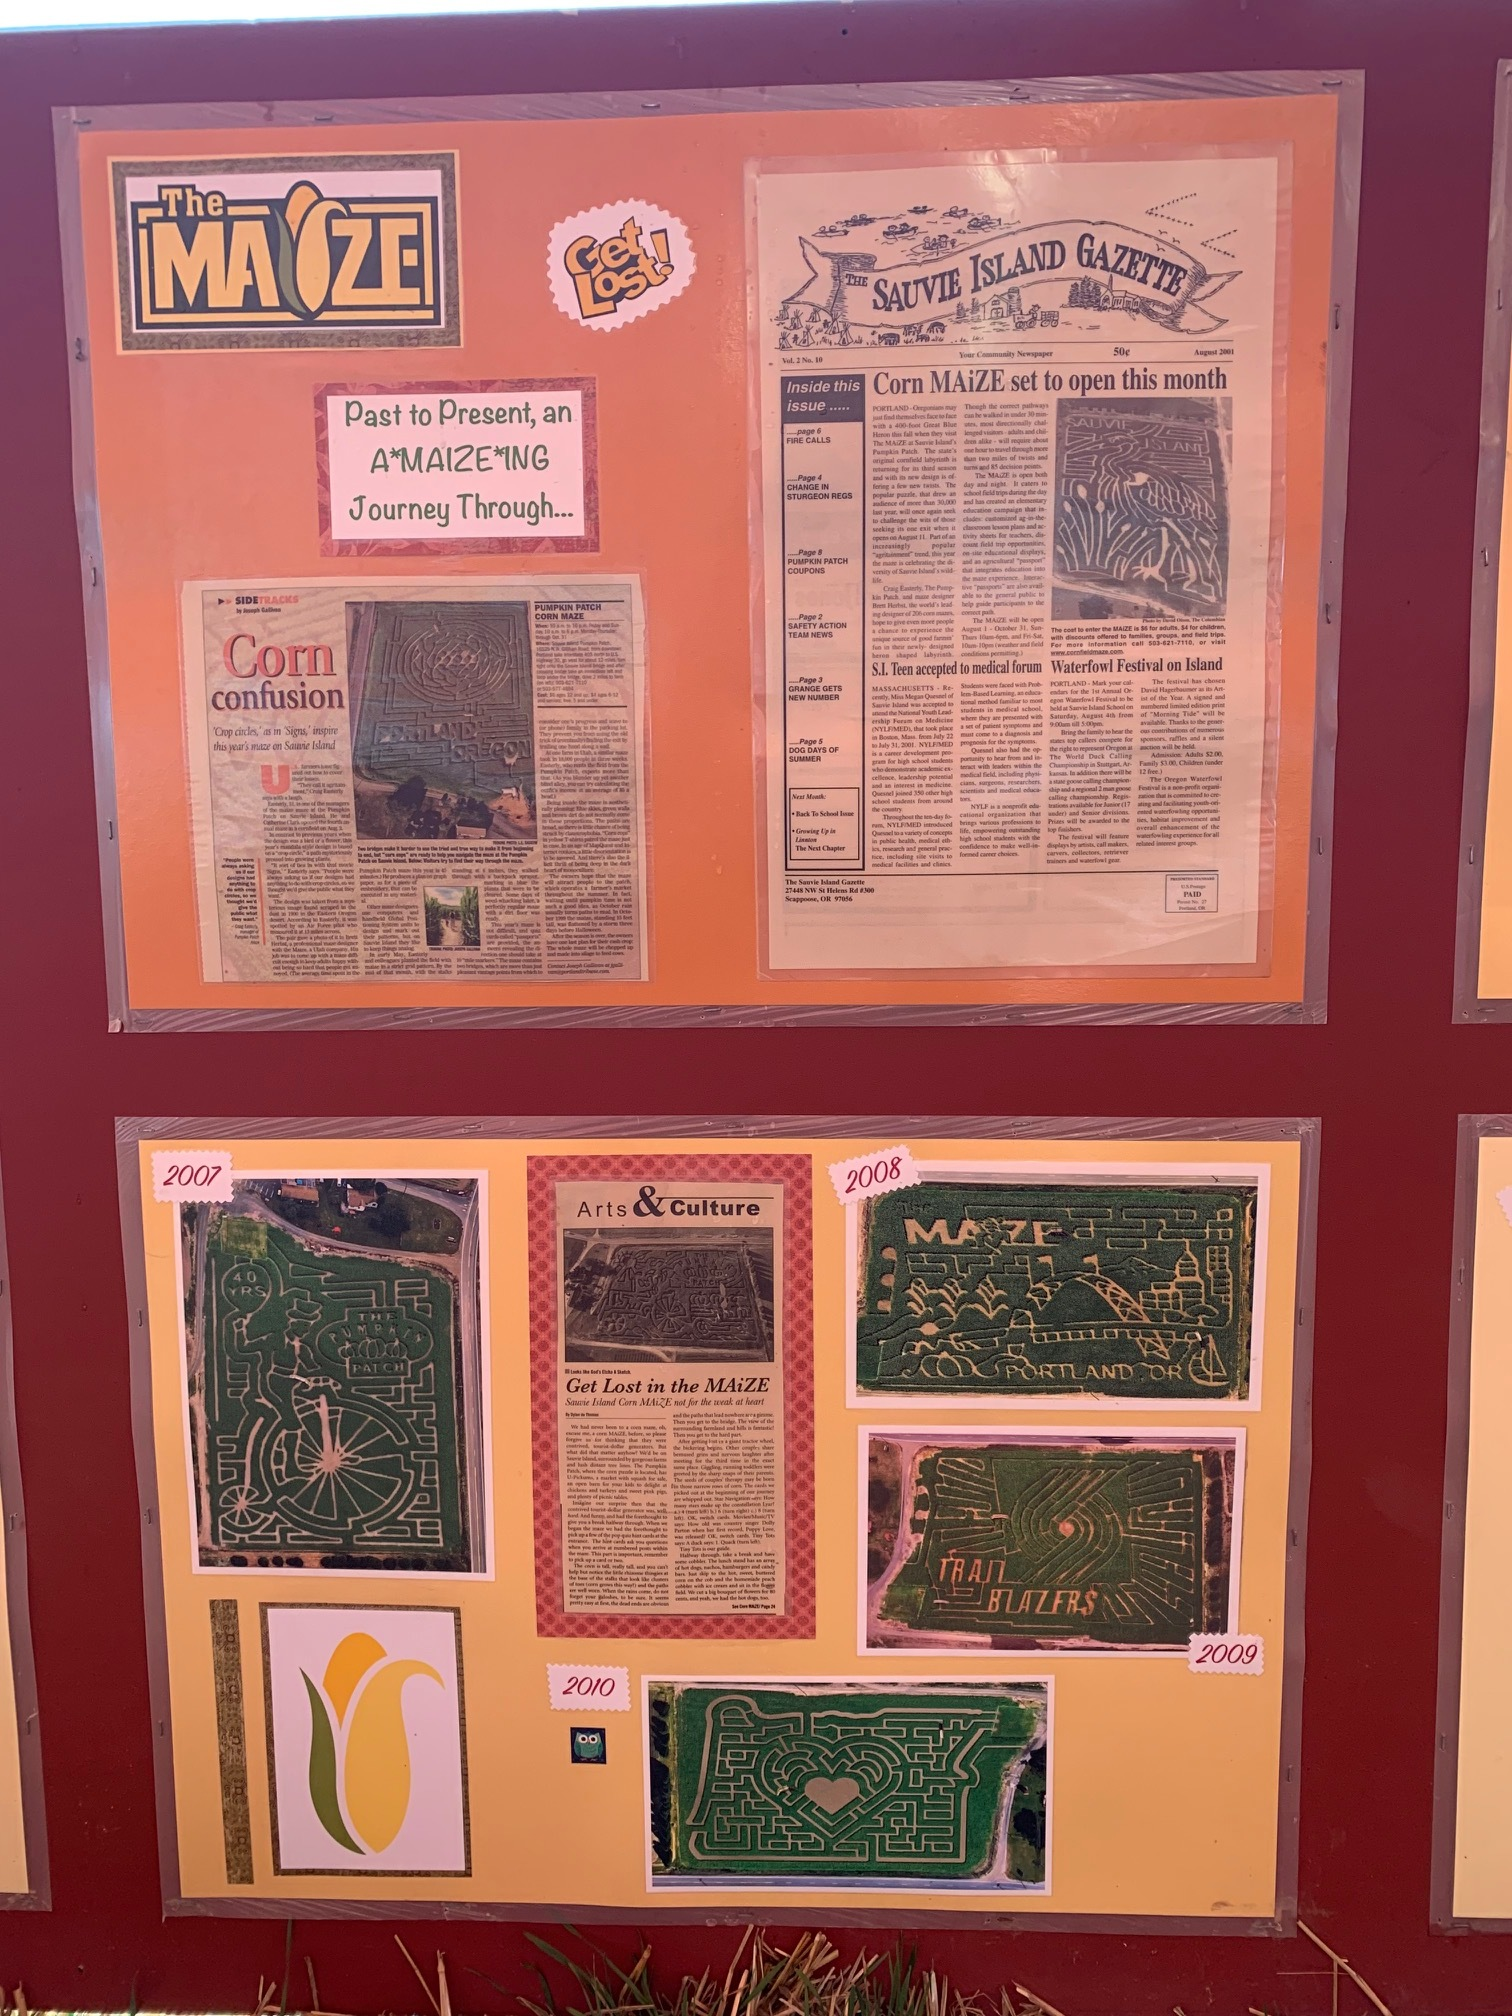 Some of the newspaper coverage and past corn maze designs. Perhaps you can find a maze you did here in years past? Image Courtesy: Dan Meyers